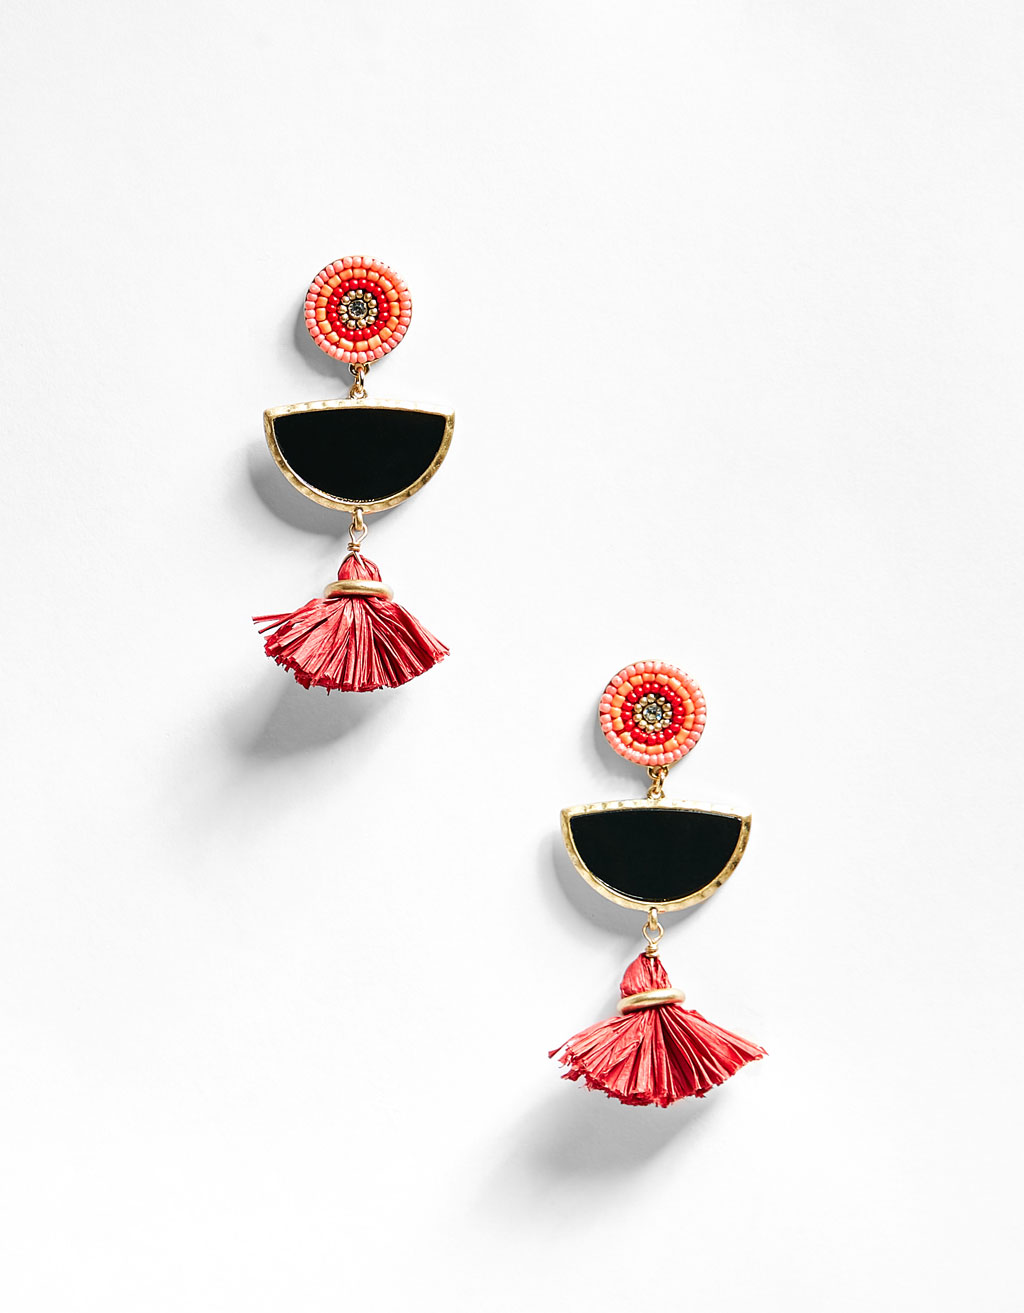 Brooch earrings with mini tassels